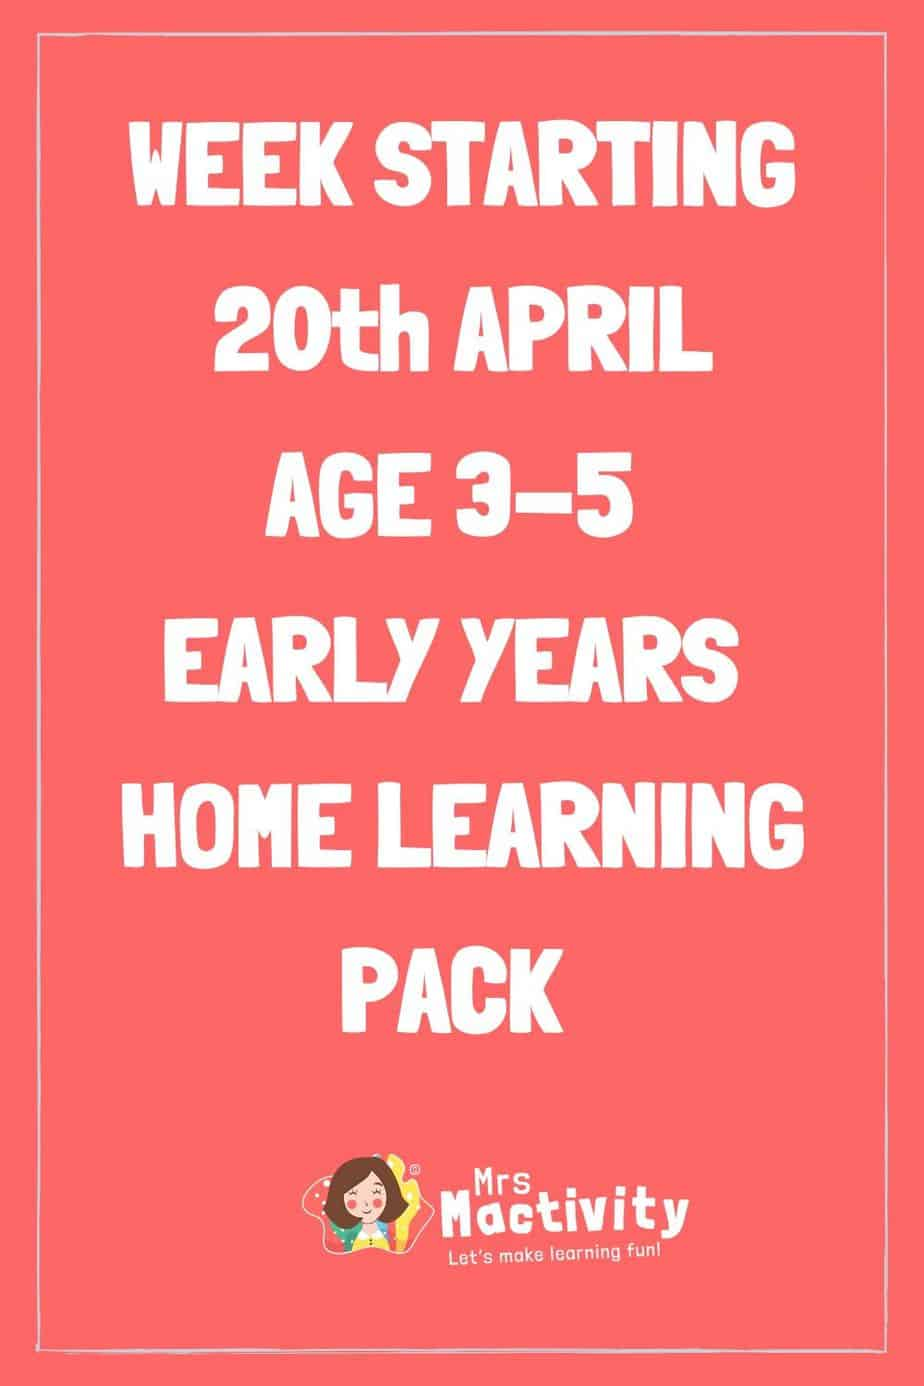 20th April Early Years (Age 4-5) Weekly Home Learning Pack